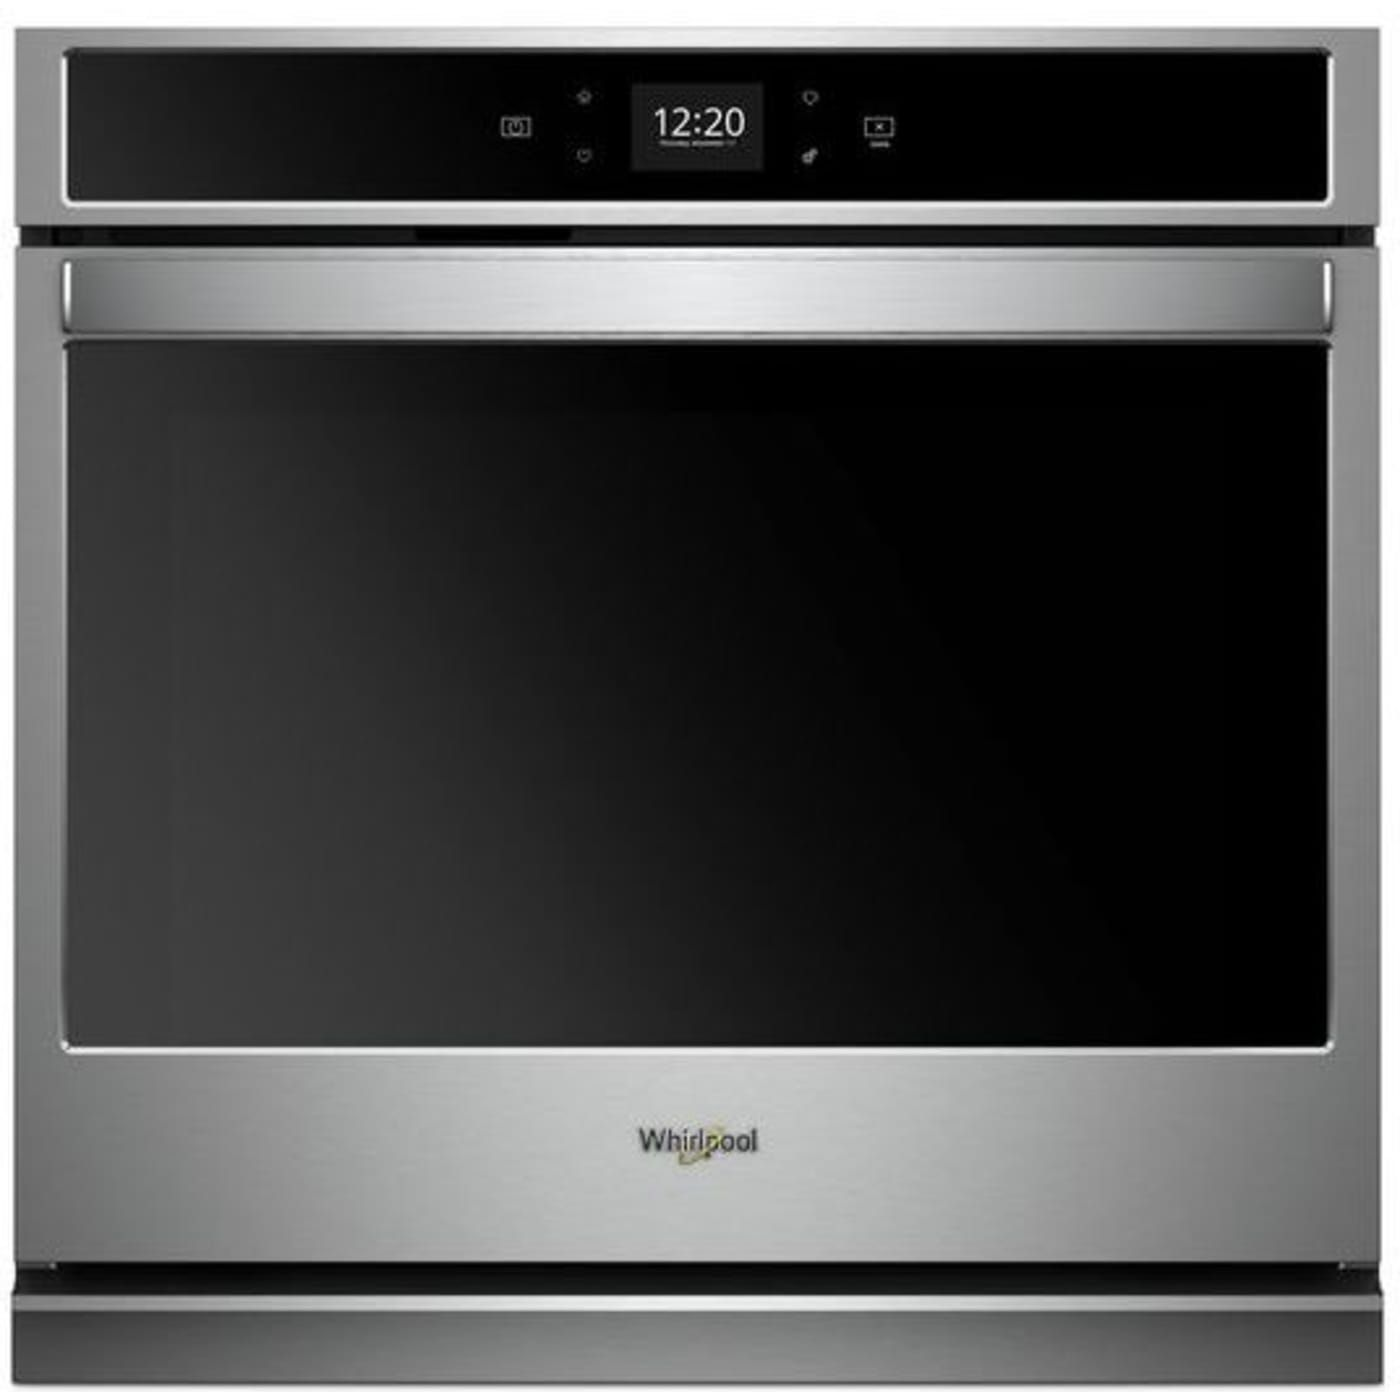 Wos51ec7hs By Whirlpool Electric Wall Ovens Goedekers Com Electric Wall Oven Integrated Dishwasher Wall Oven